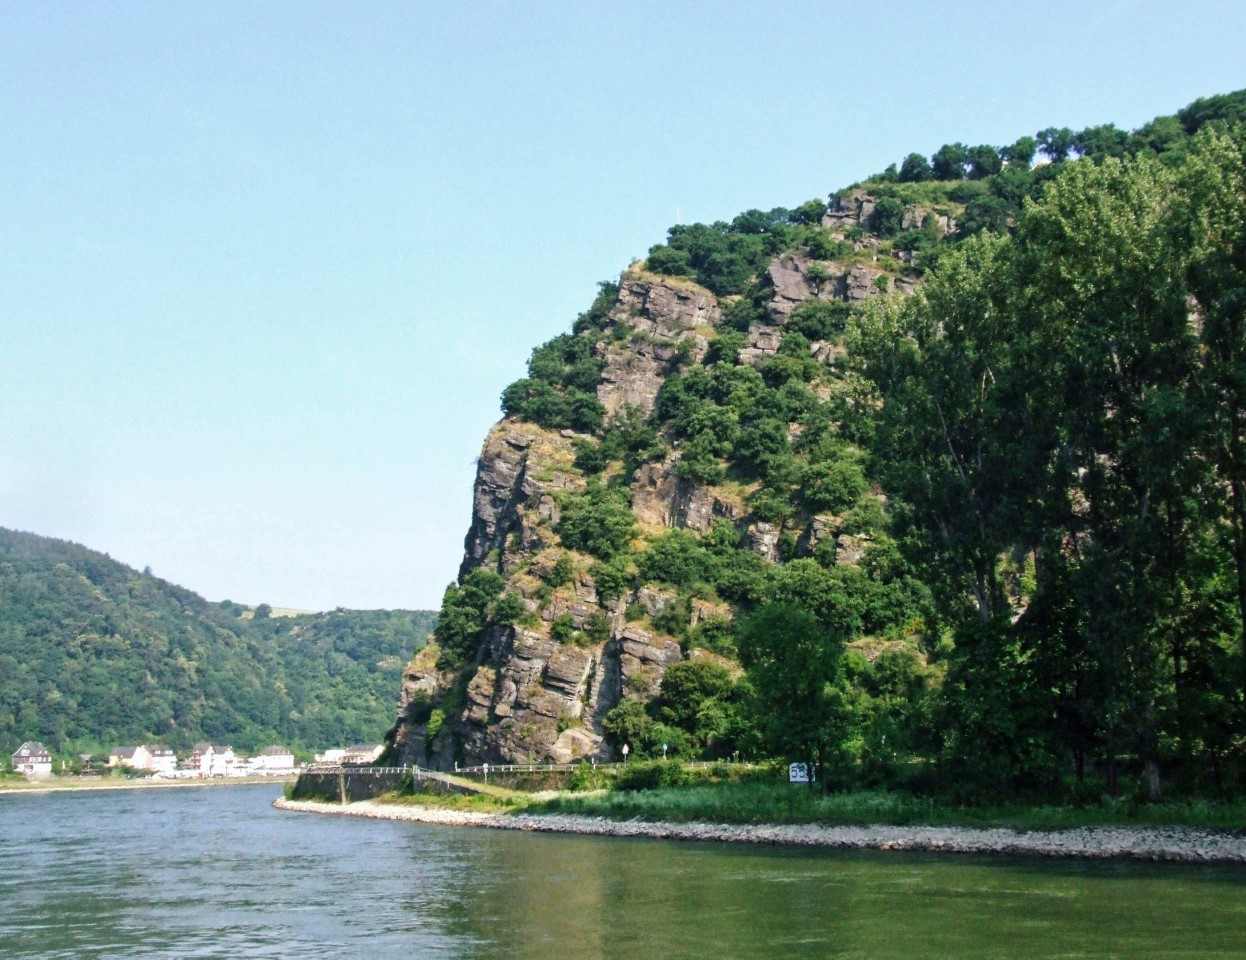 Bend in a river with rocky cliff